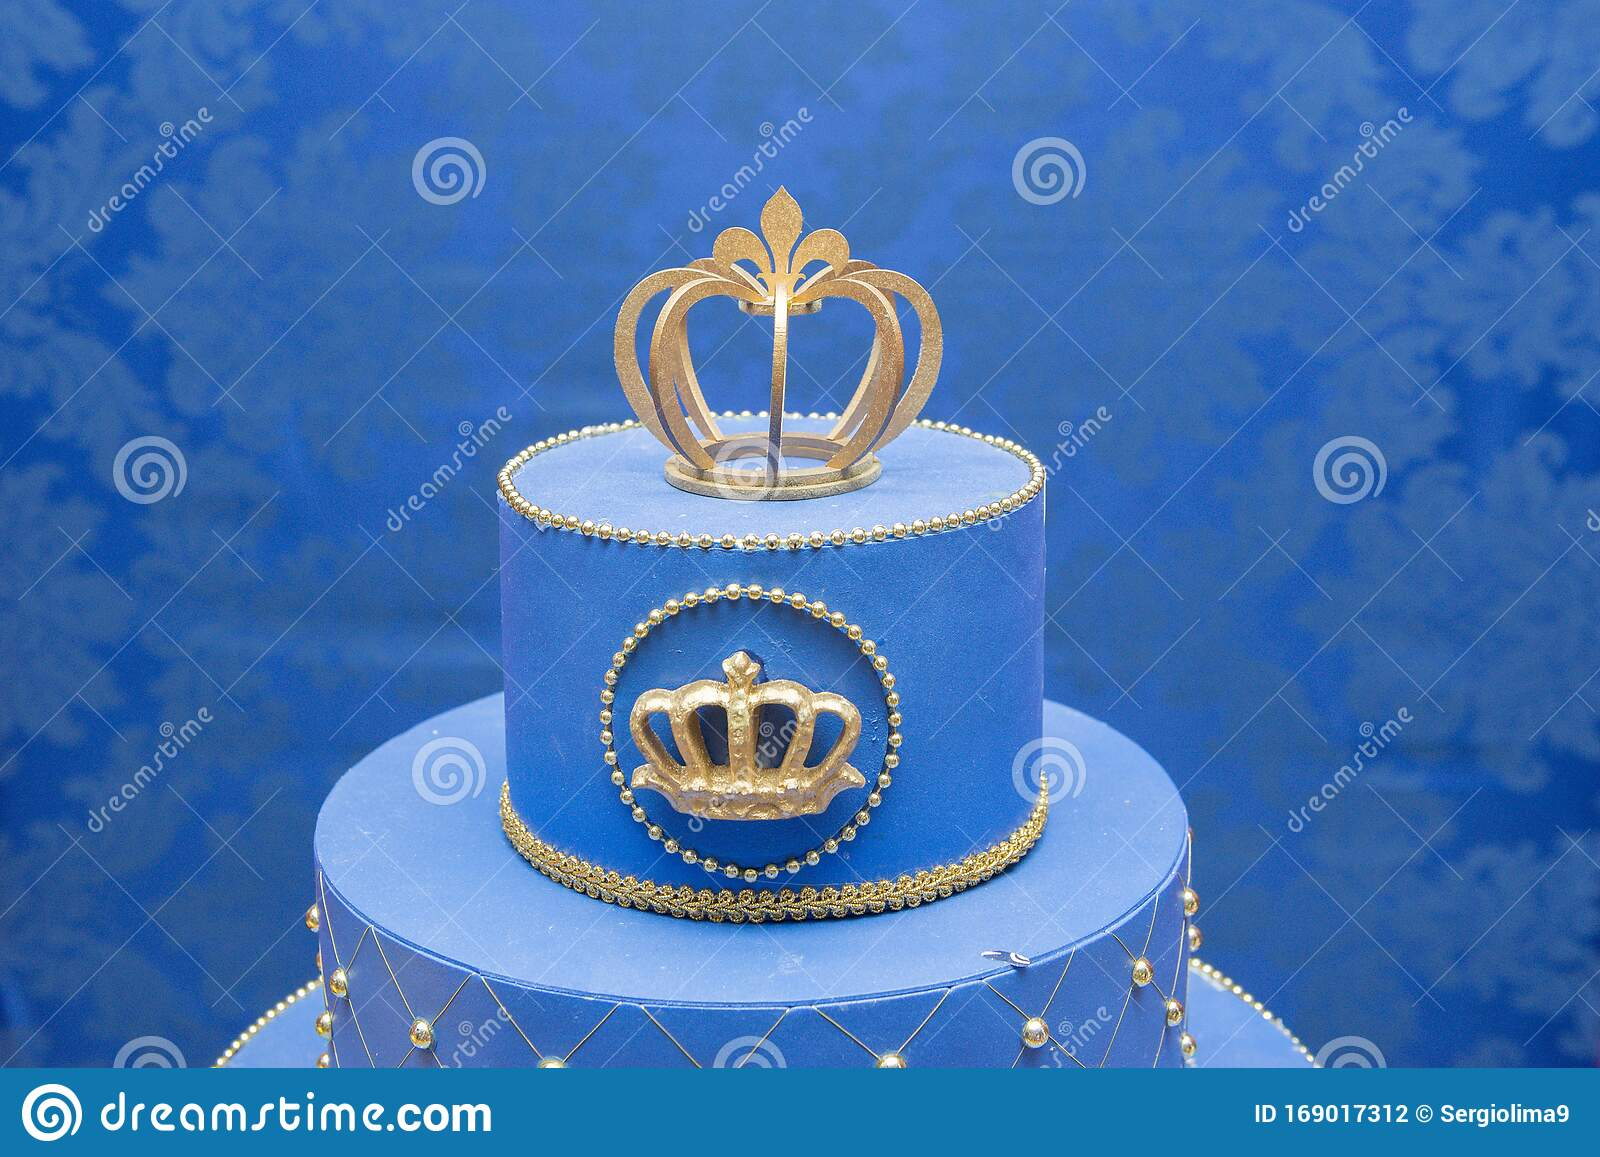 Tremendous Fake Blue Birthday Cake With A Crown On Top Stock Photo Image Funny Birthday Cards Online Aeocydamsfinfo